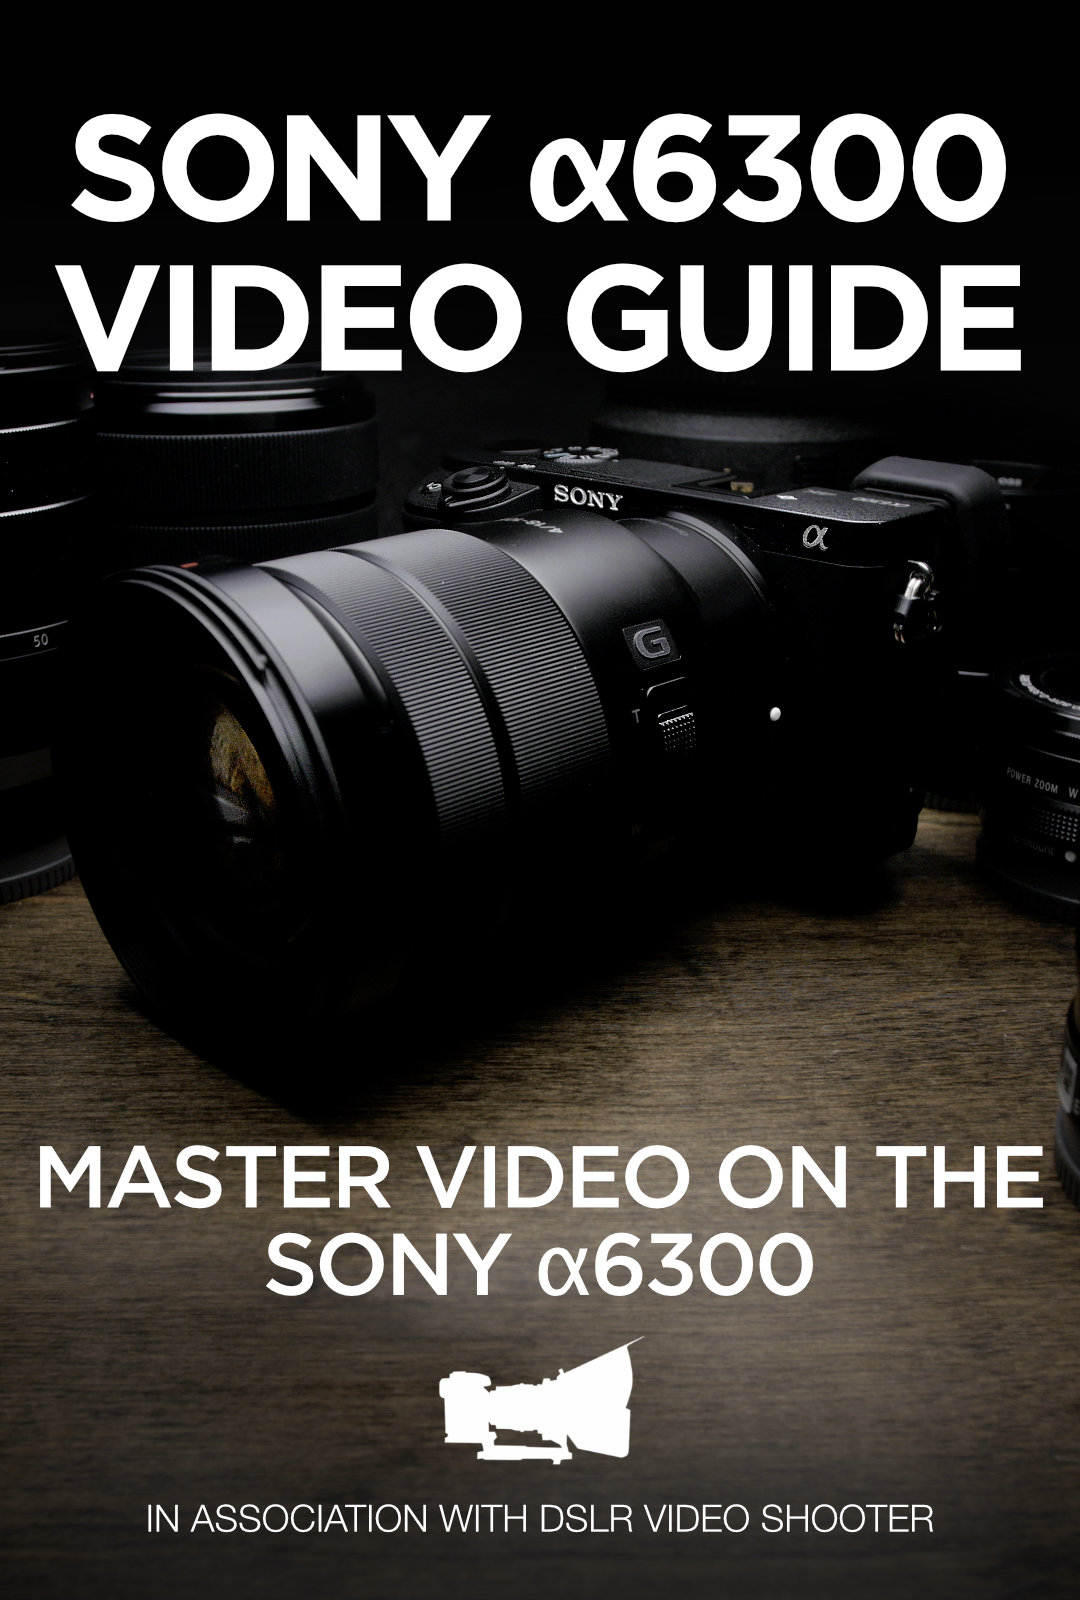 Sony a6300 Guide Now Available!